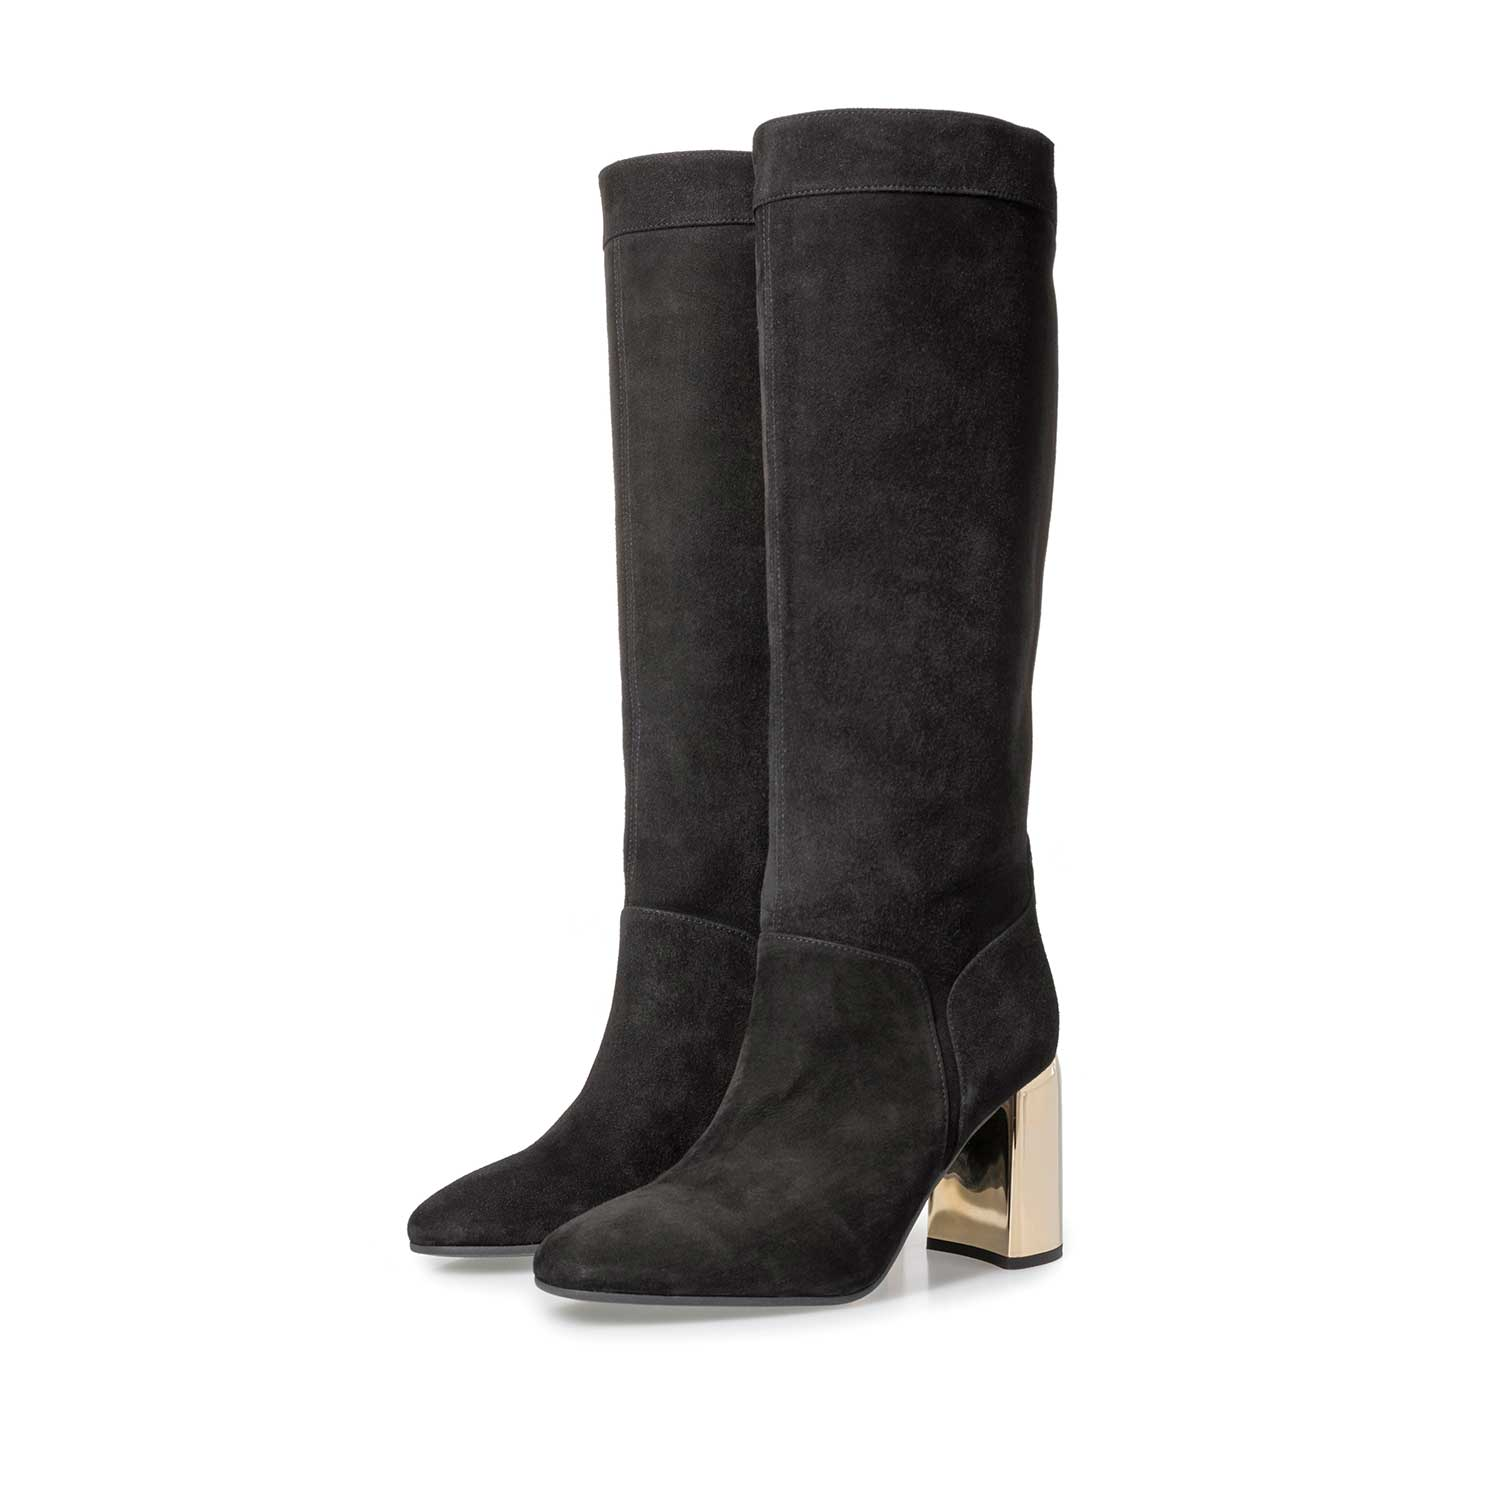 85708/00 - Black suede leather high boots